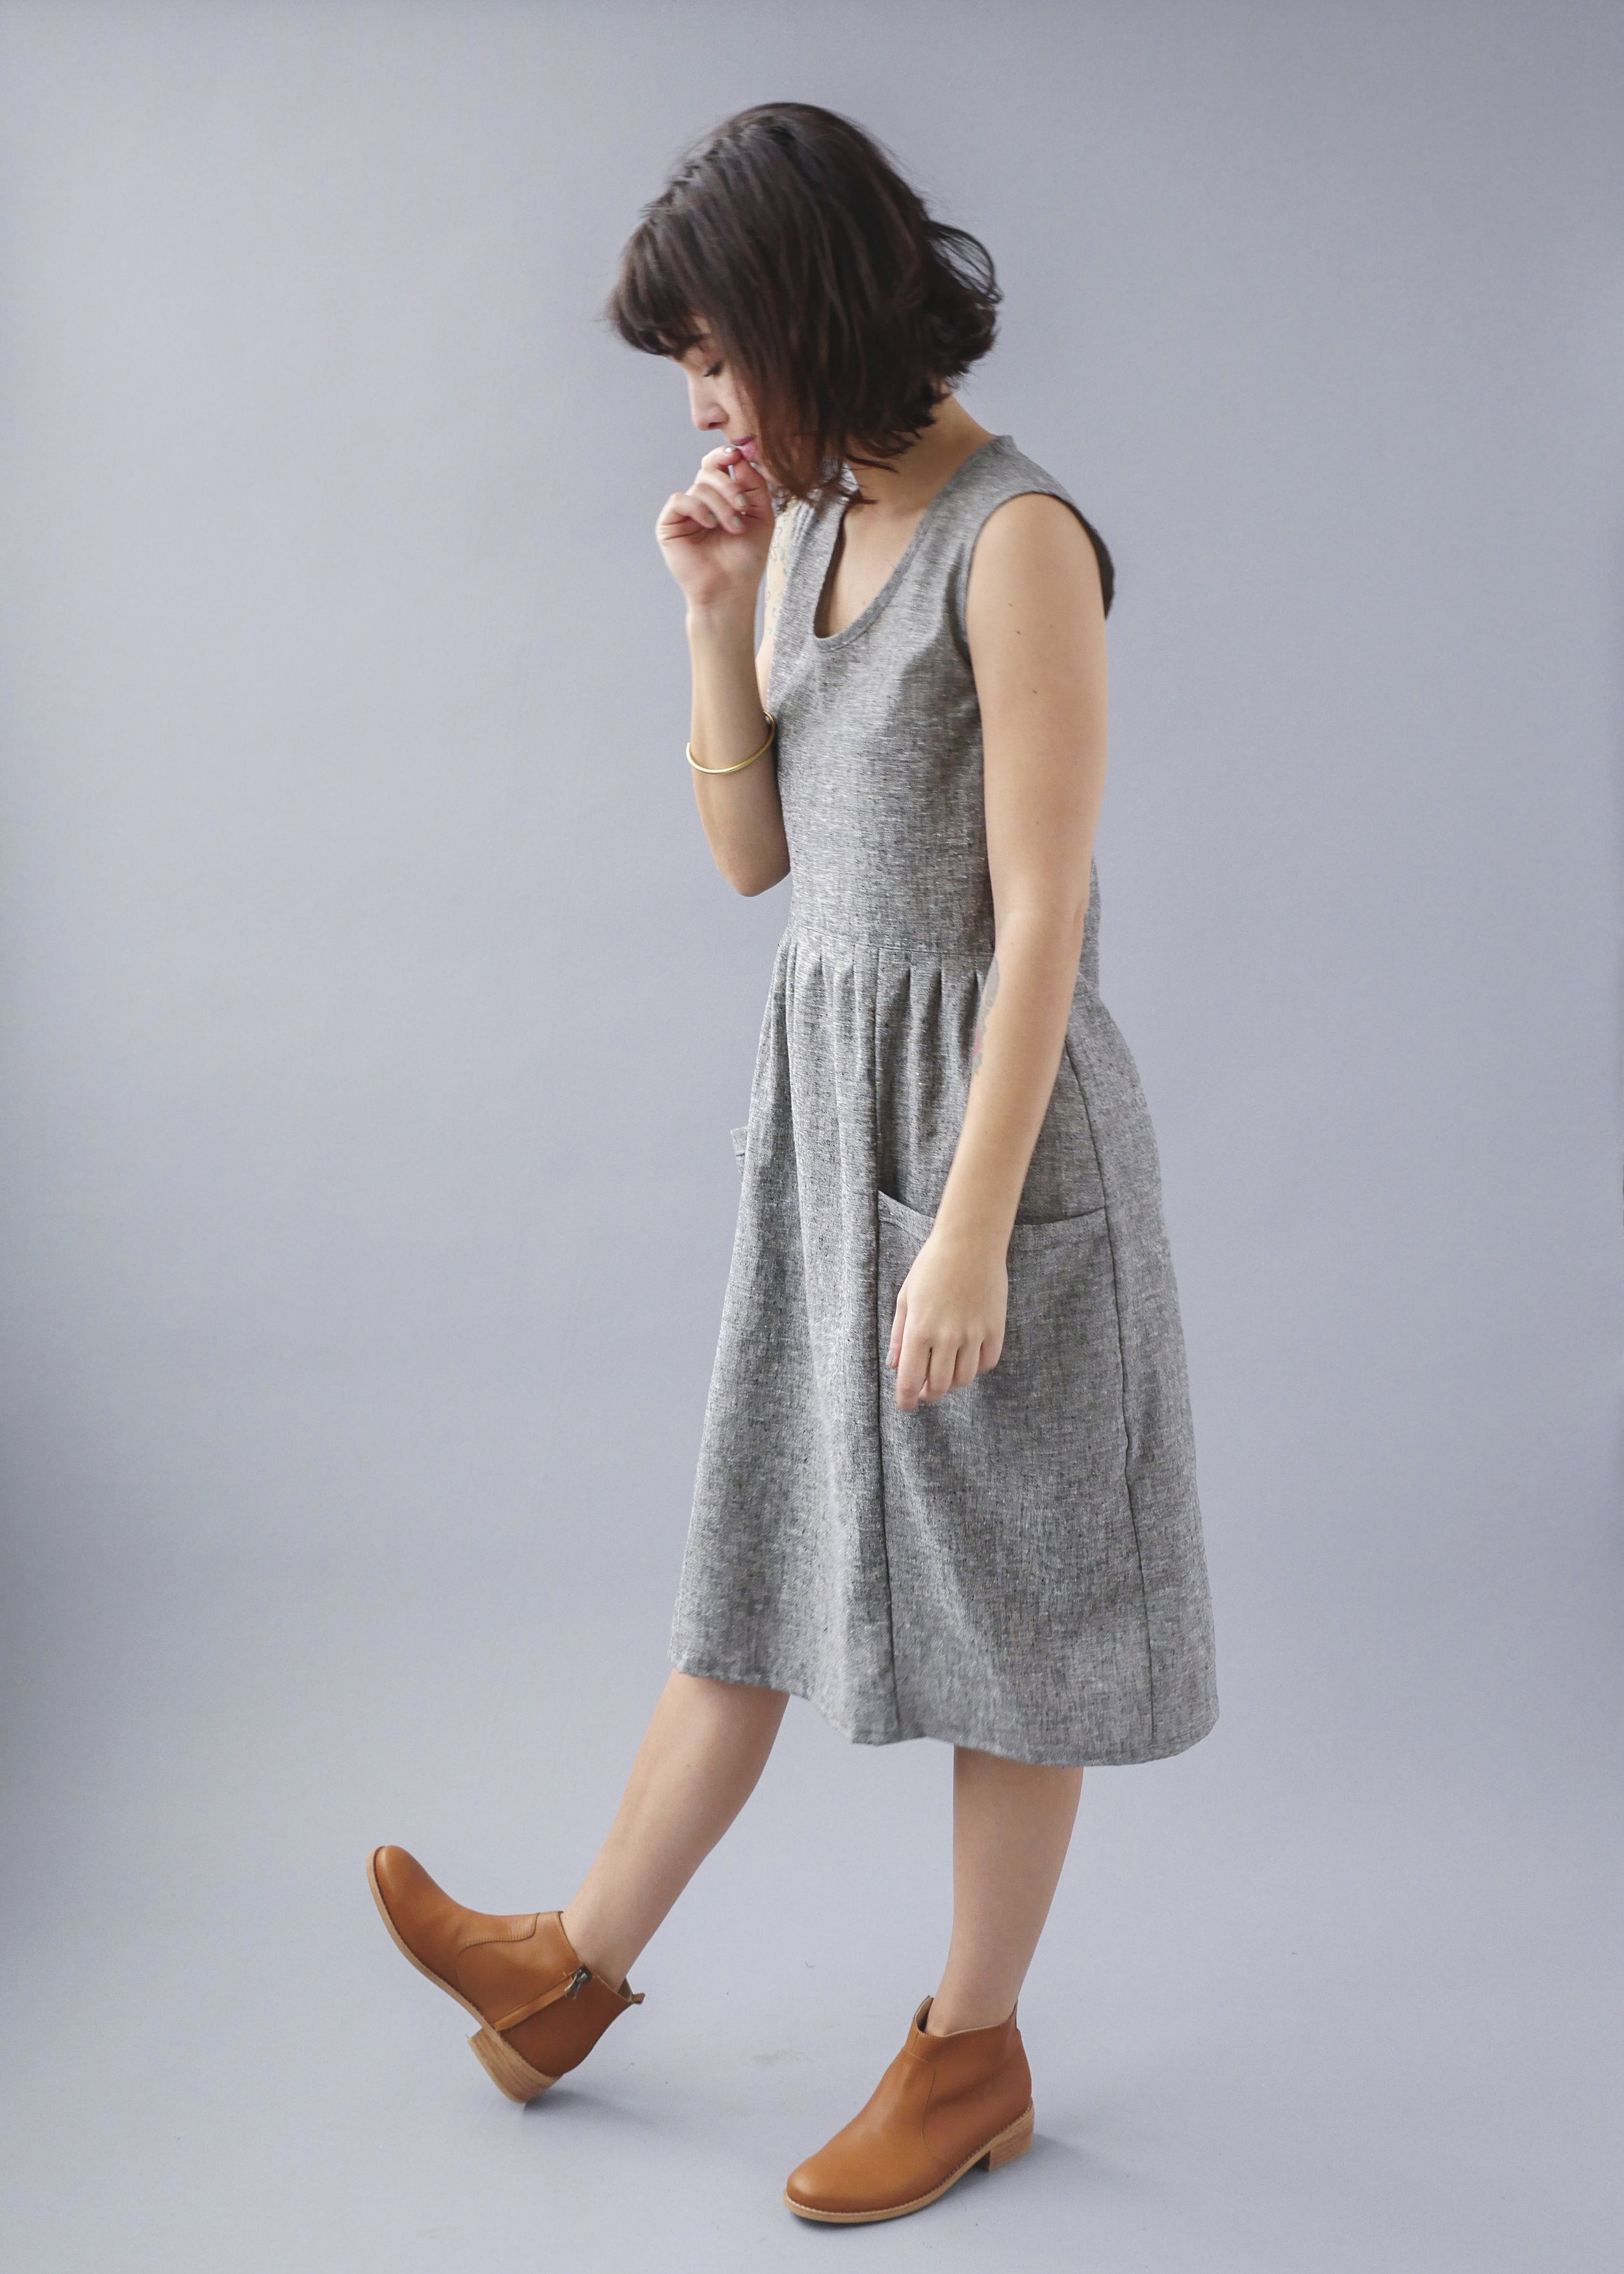 Temperate Jan sleeveless pockets grey dress-3.jpg